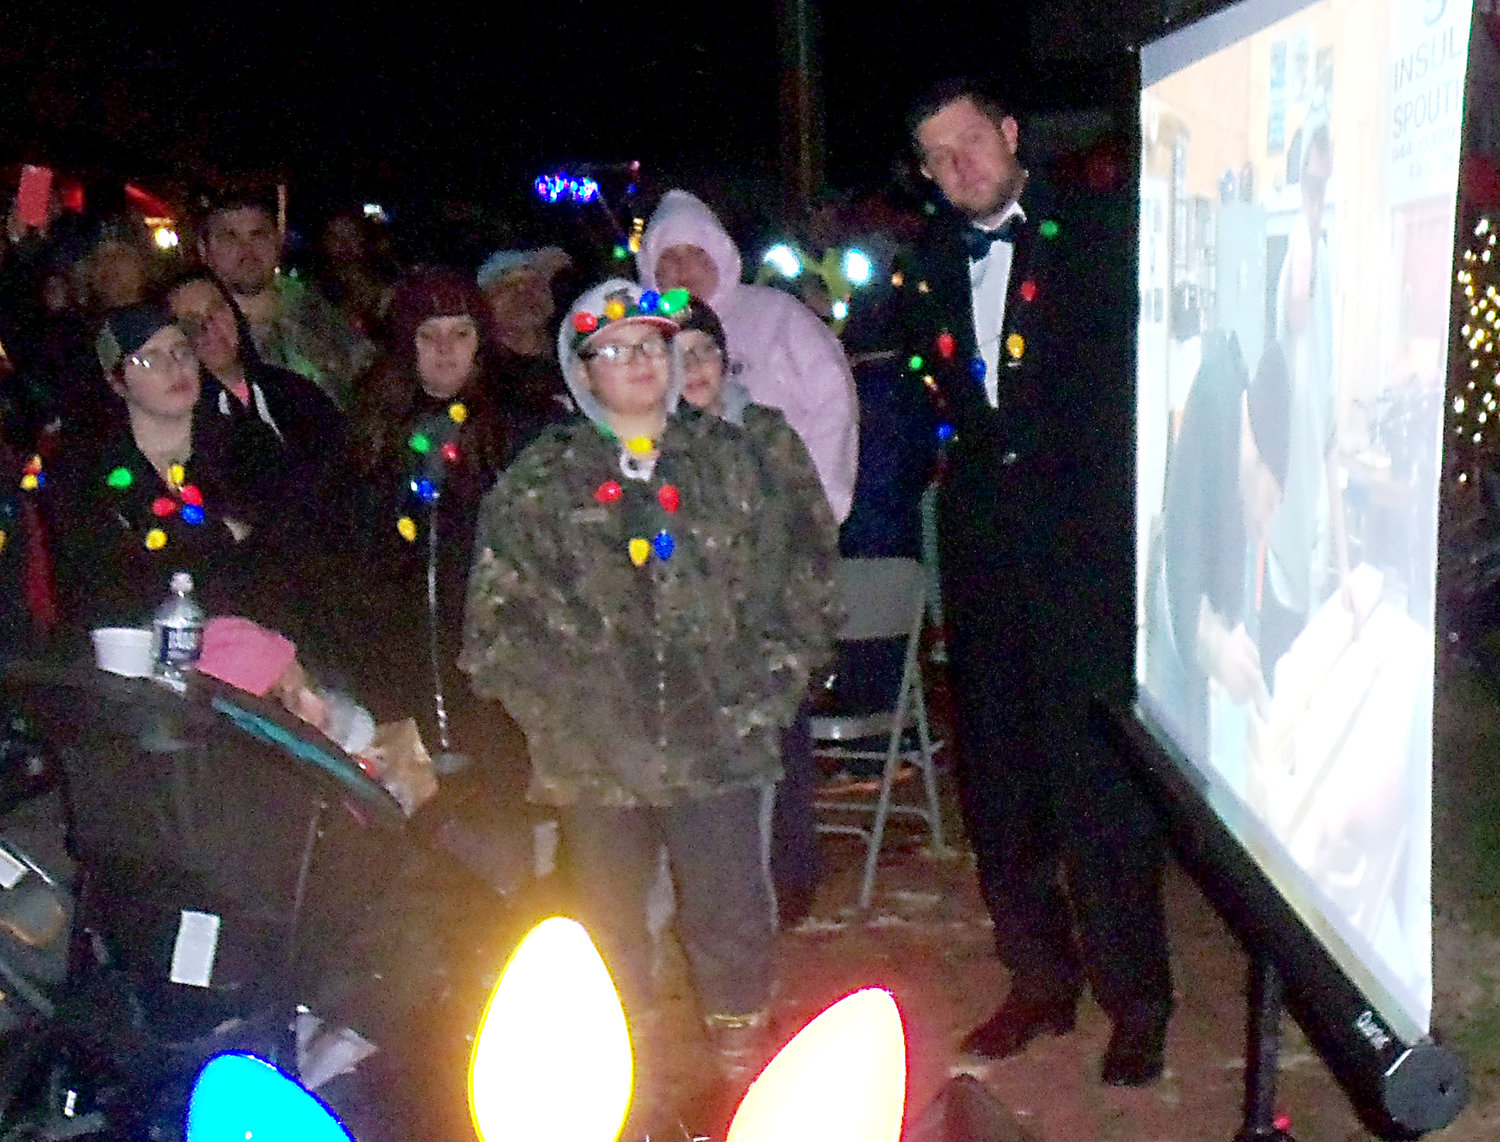 Mayor James H. Curry III shows a video about the new Santa house to the crowd at Middletown borough's tree-lighting ceremony on Saturday night, Nov. 30.